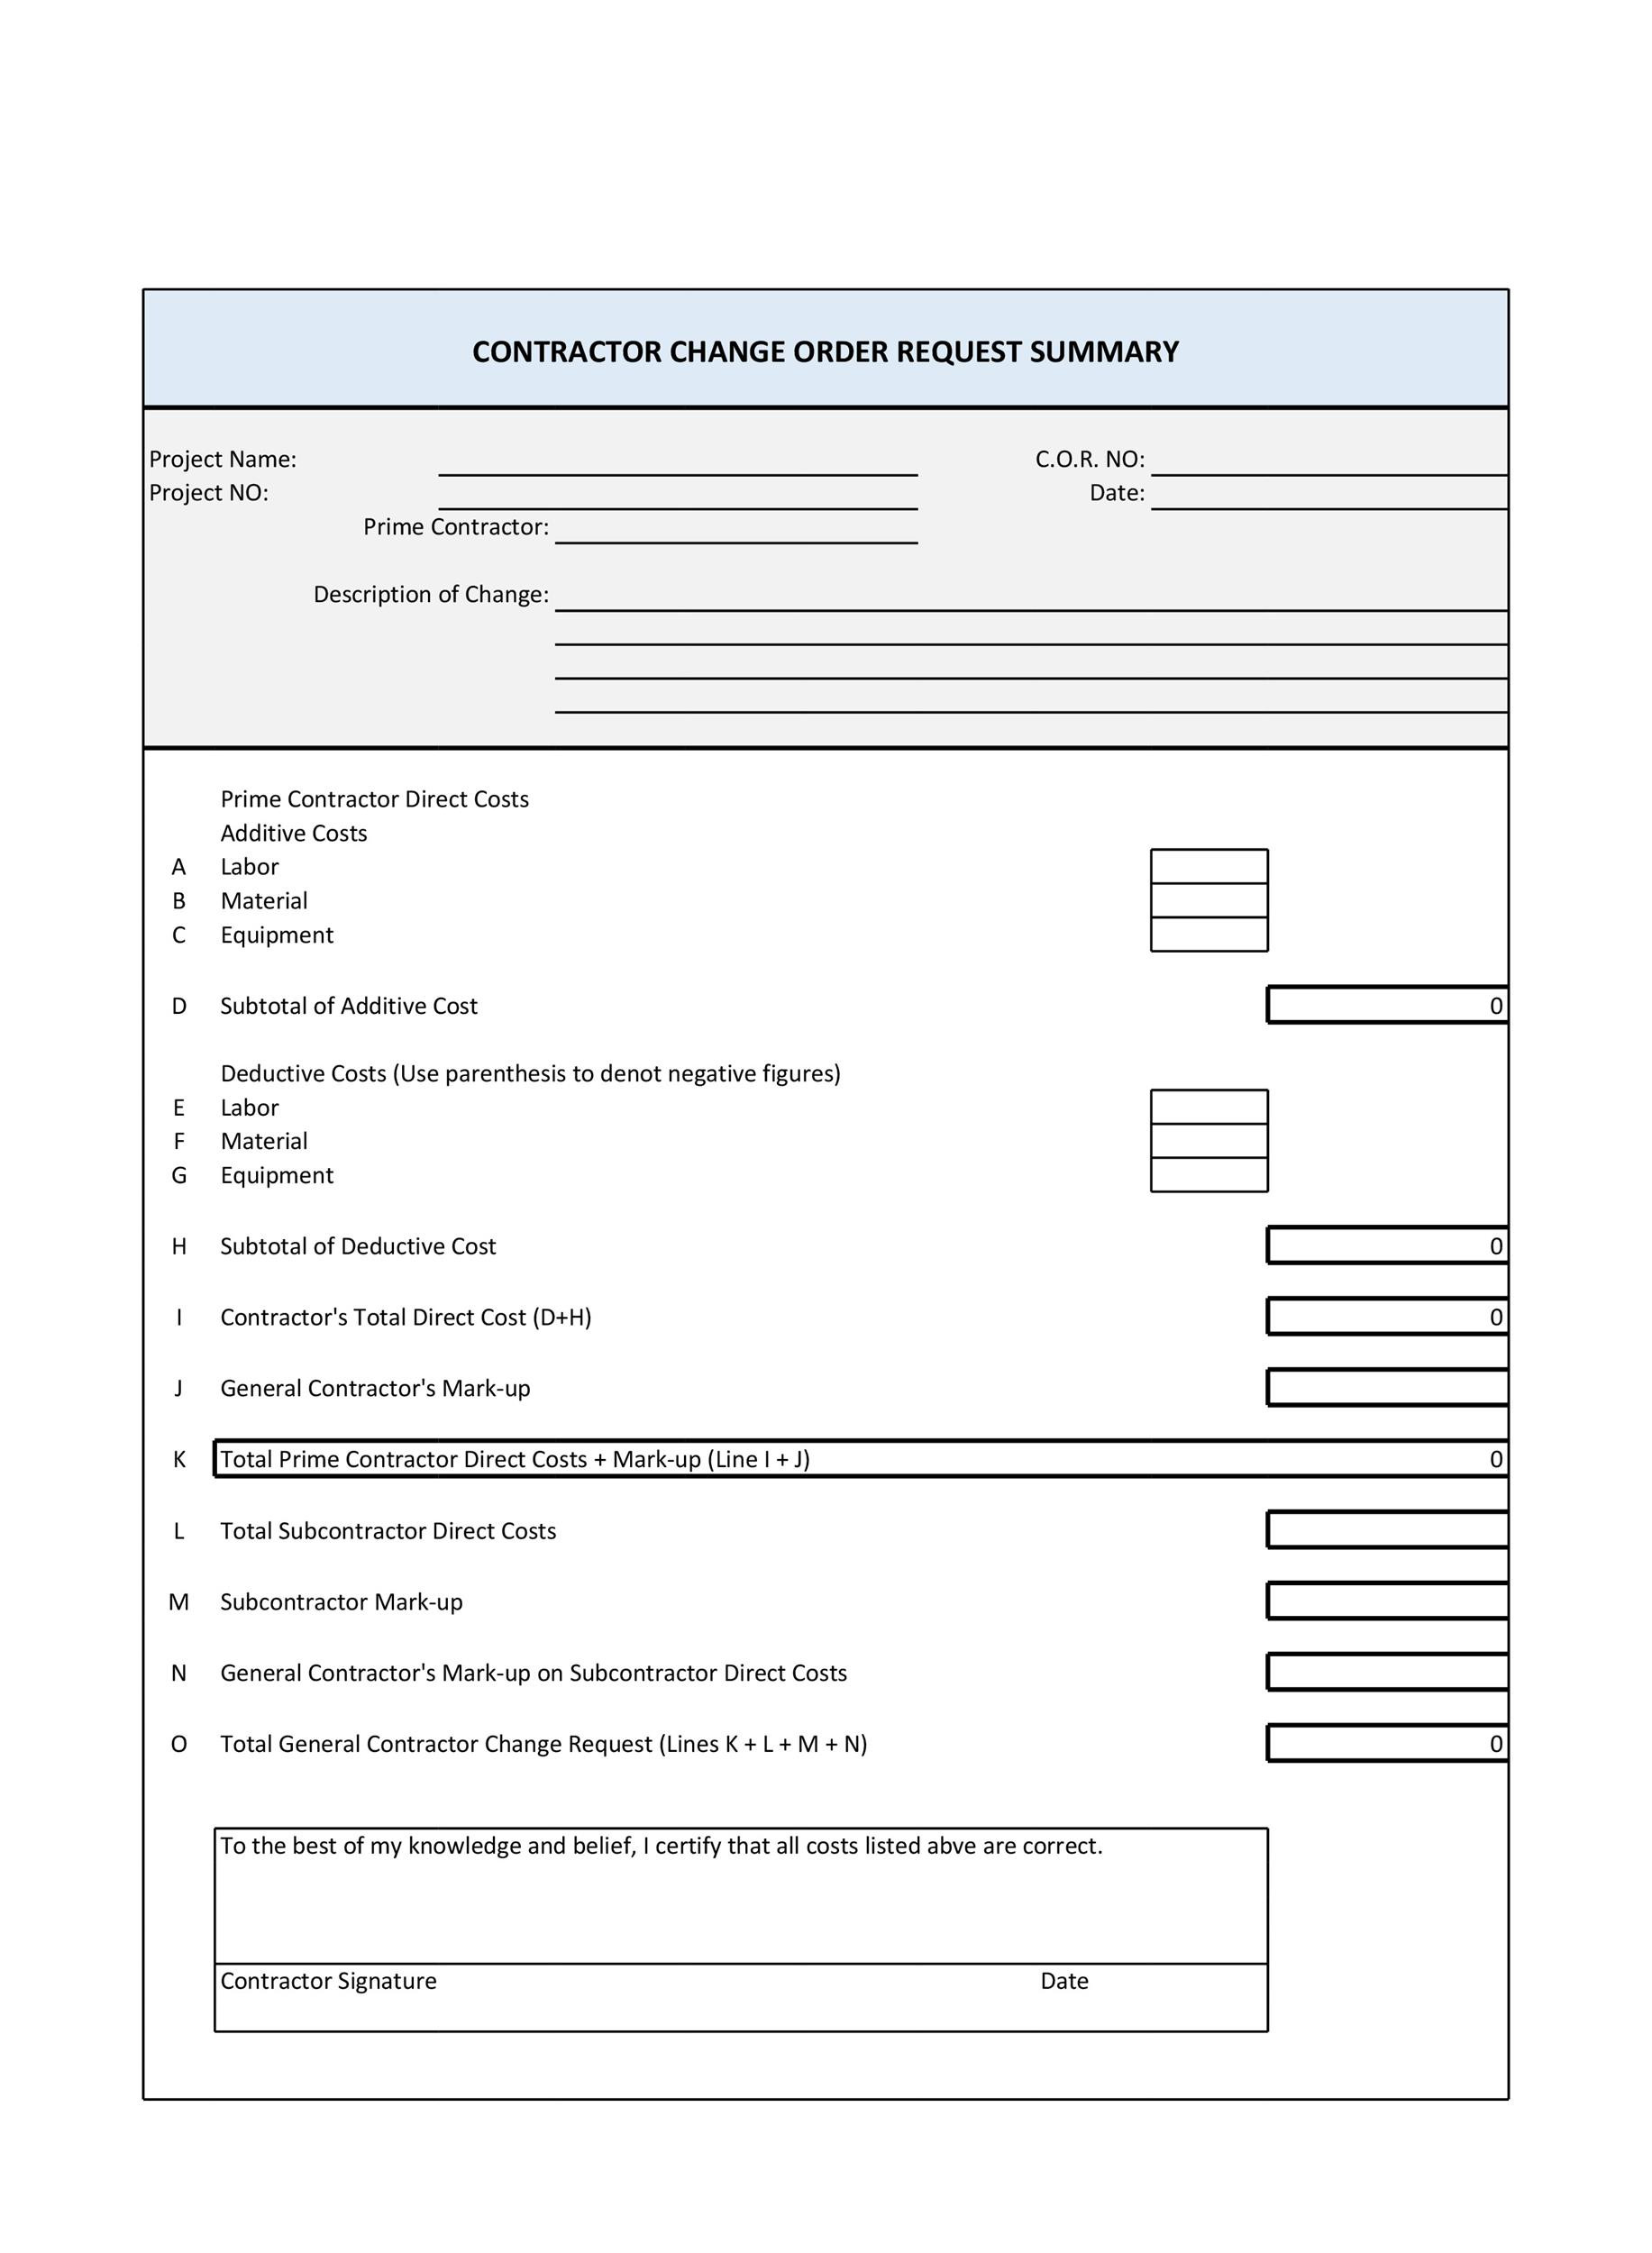 Change order form Template